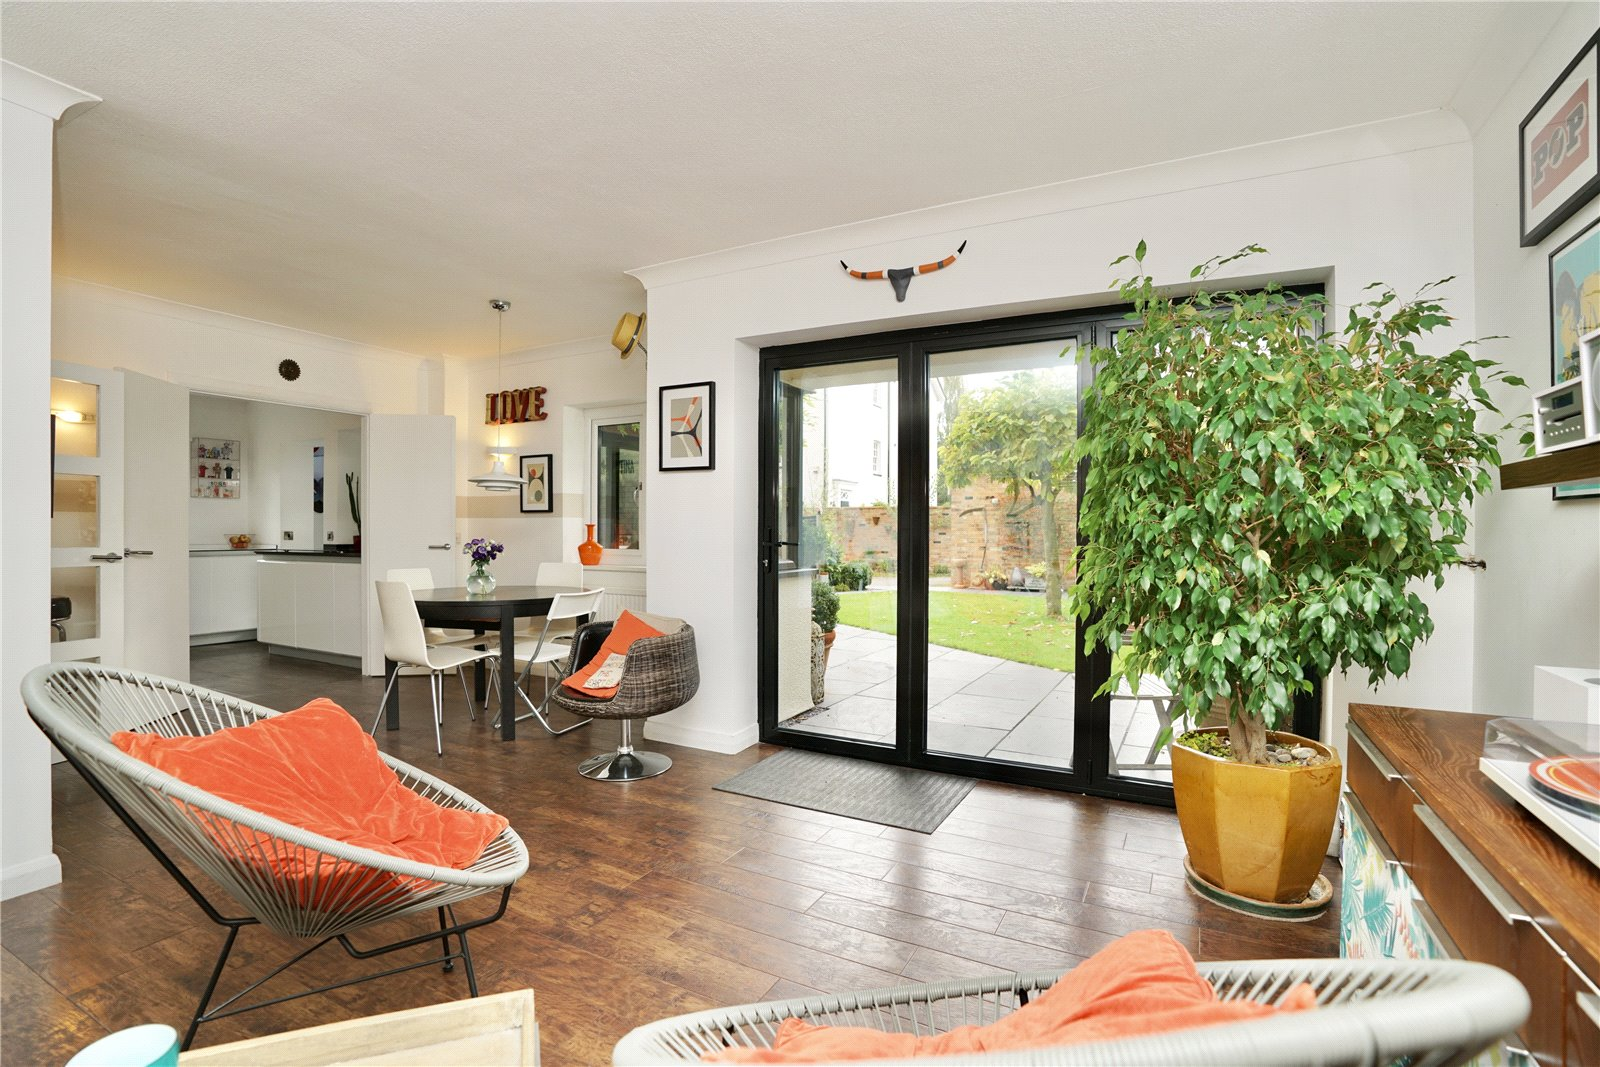 4 bed house for sale in Eaton Socon  - Property Image 4